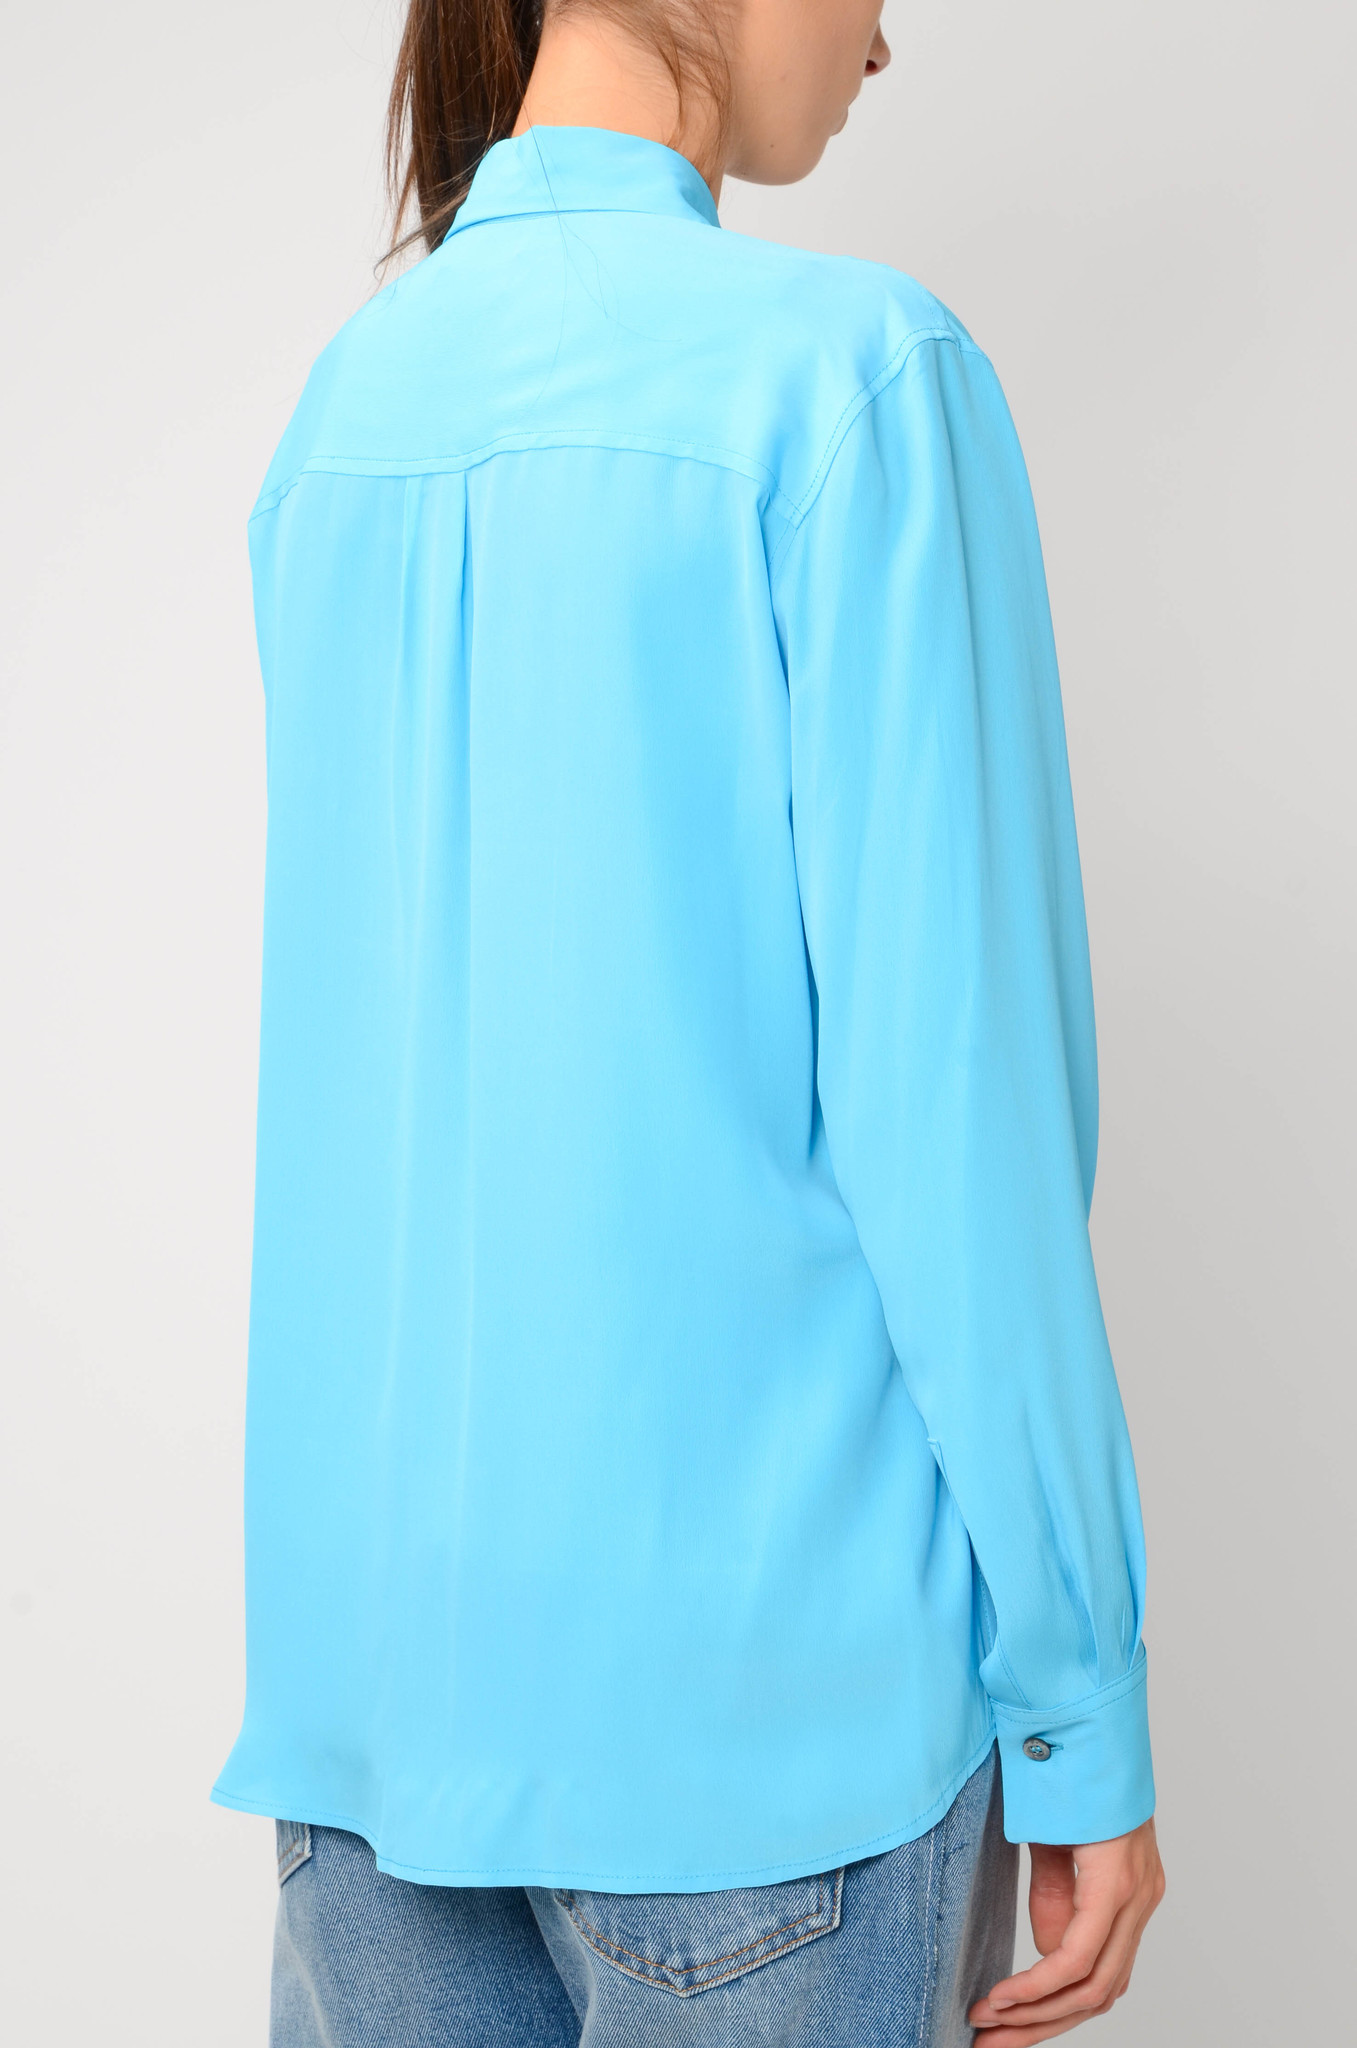 SILK BLEND BLOUSE IN TURQUOISE-4